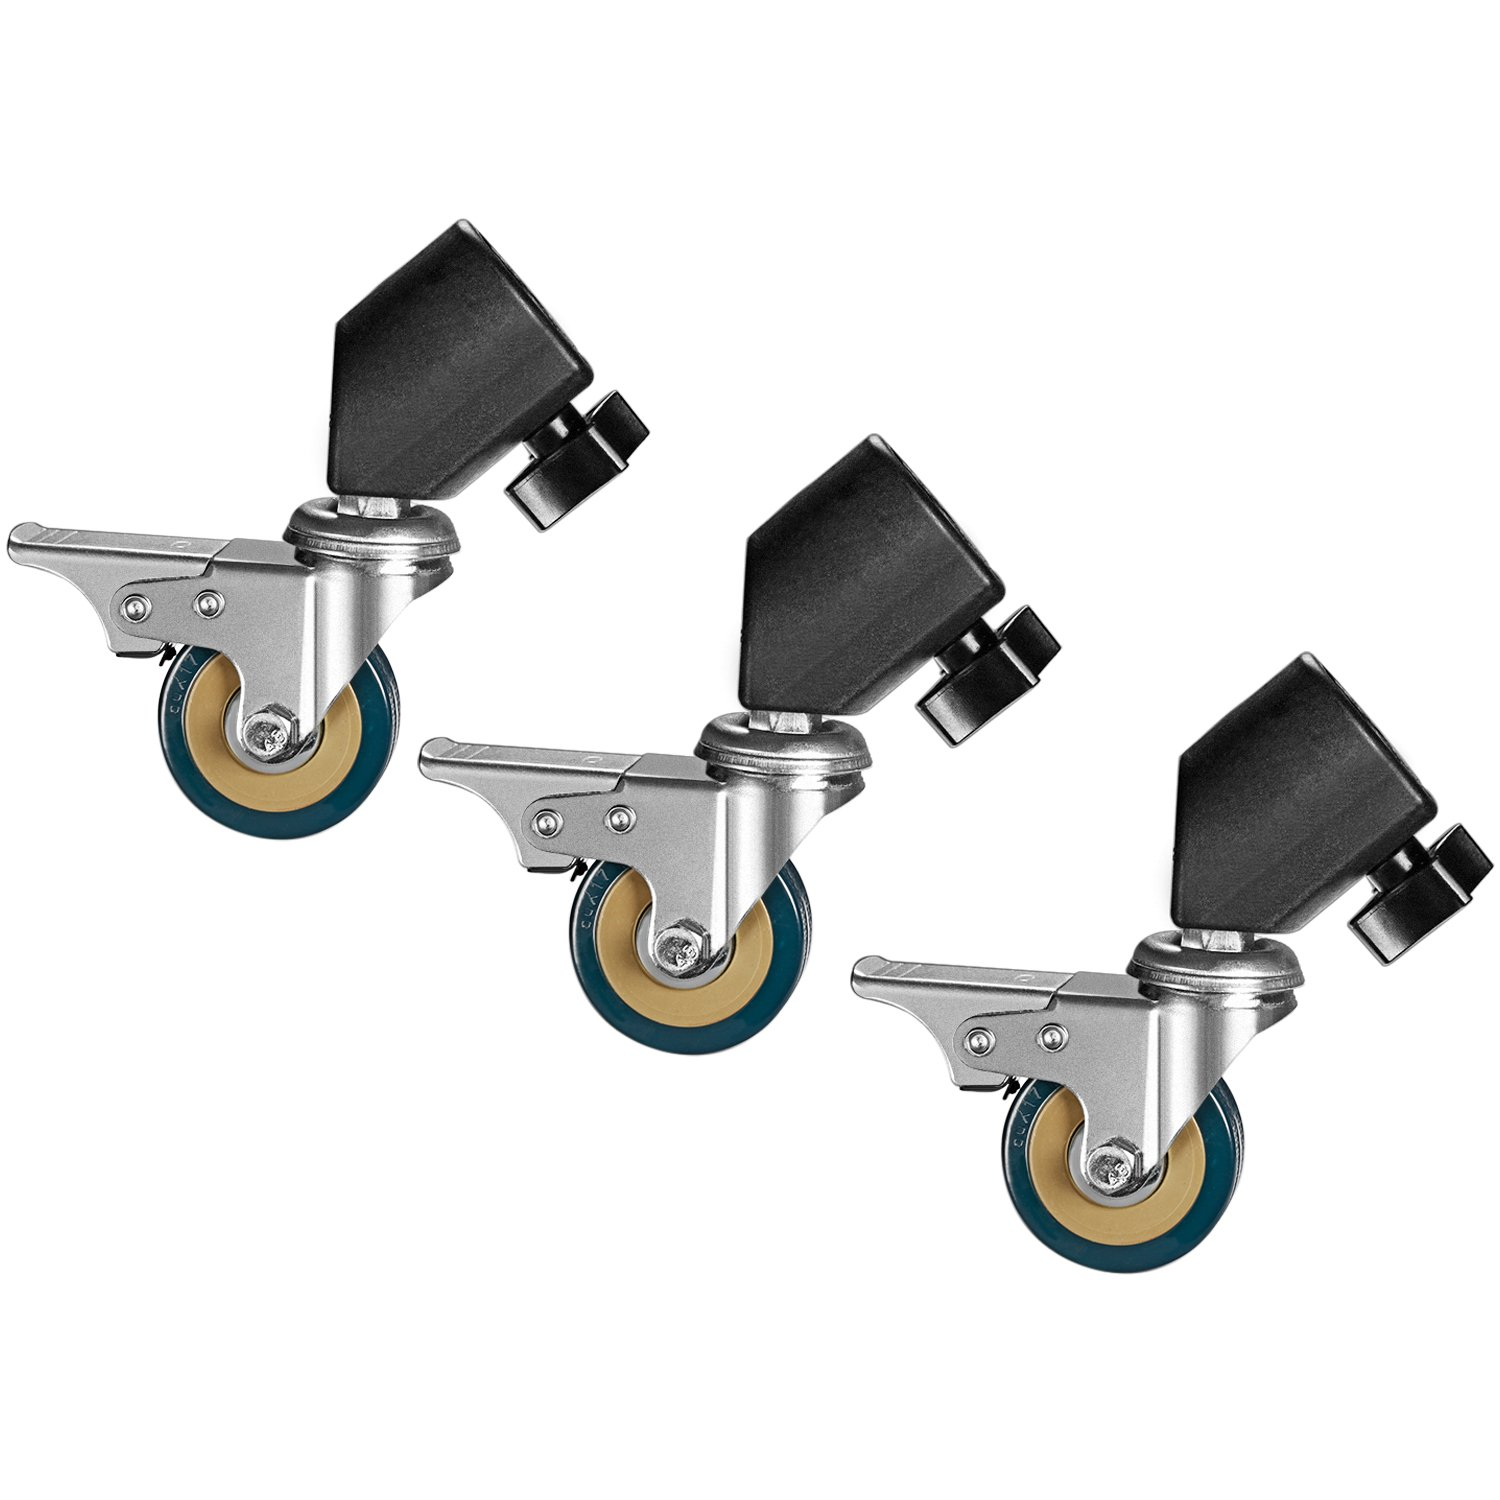 Neewer 6 Packs Professional Swivel Caster Wheel Set - Durable Metal Construction with Rubber Base for Light Stand with 16-22mm Diameter Leg, Suitable for Studio Video Photography 90091085